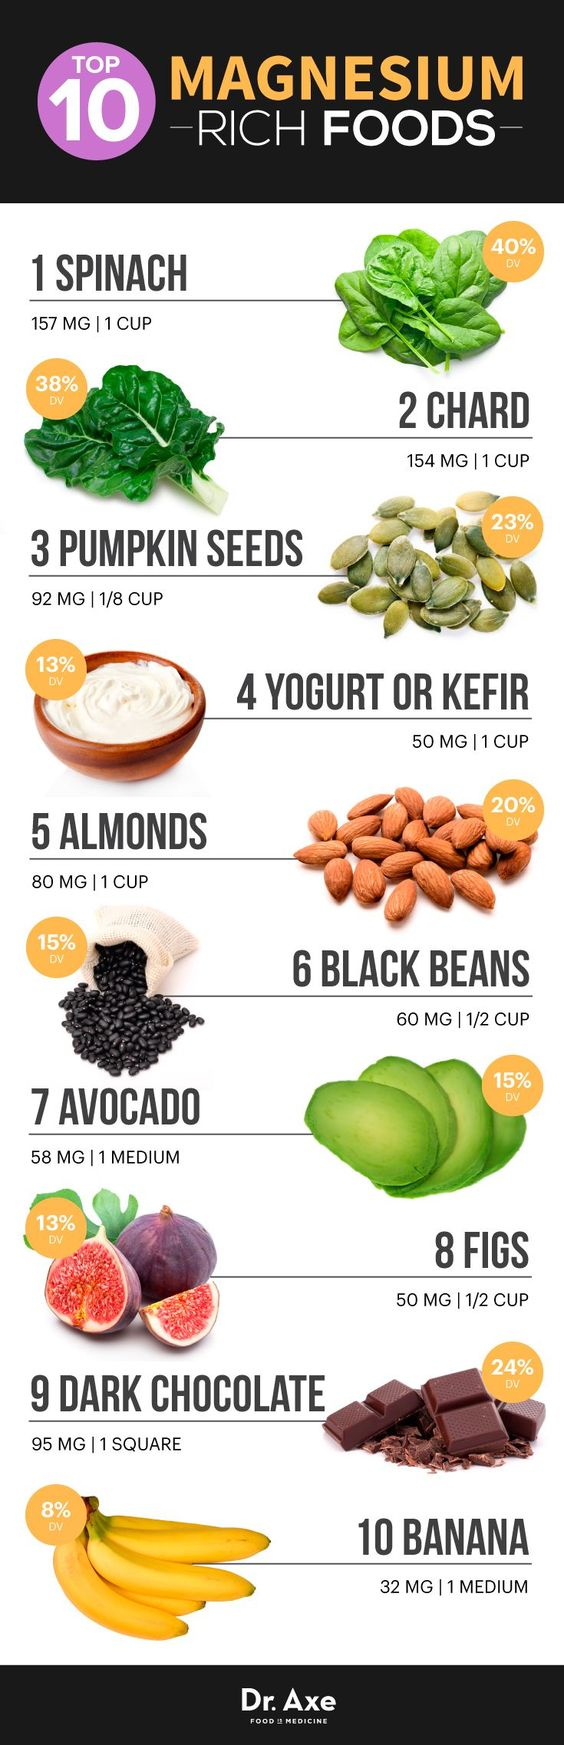 Top 10 Magnesium Rich Foods Plus Proven Benefits - Dr. Axe Top 10 Magnesium Foods Infographic Chart- learn about top 10 food chart enrised with Magnesium.: